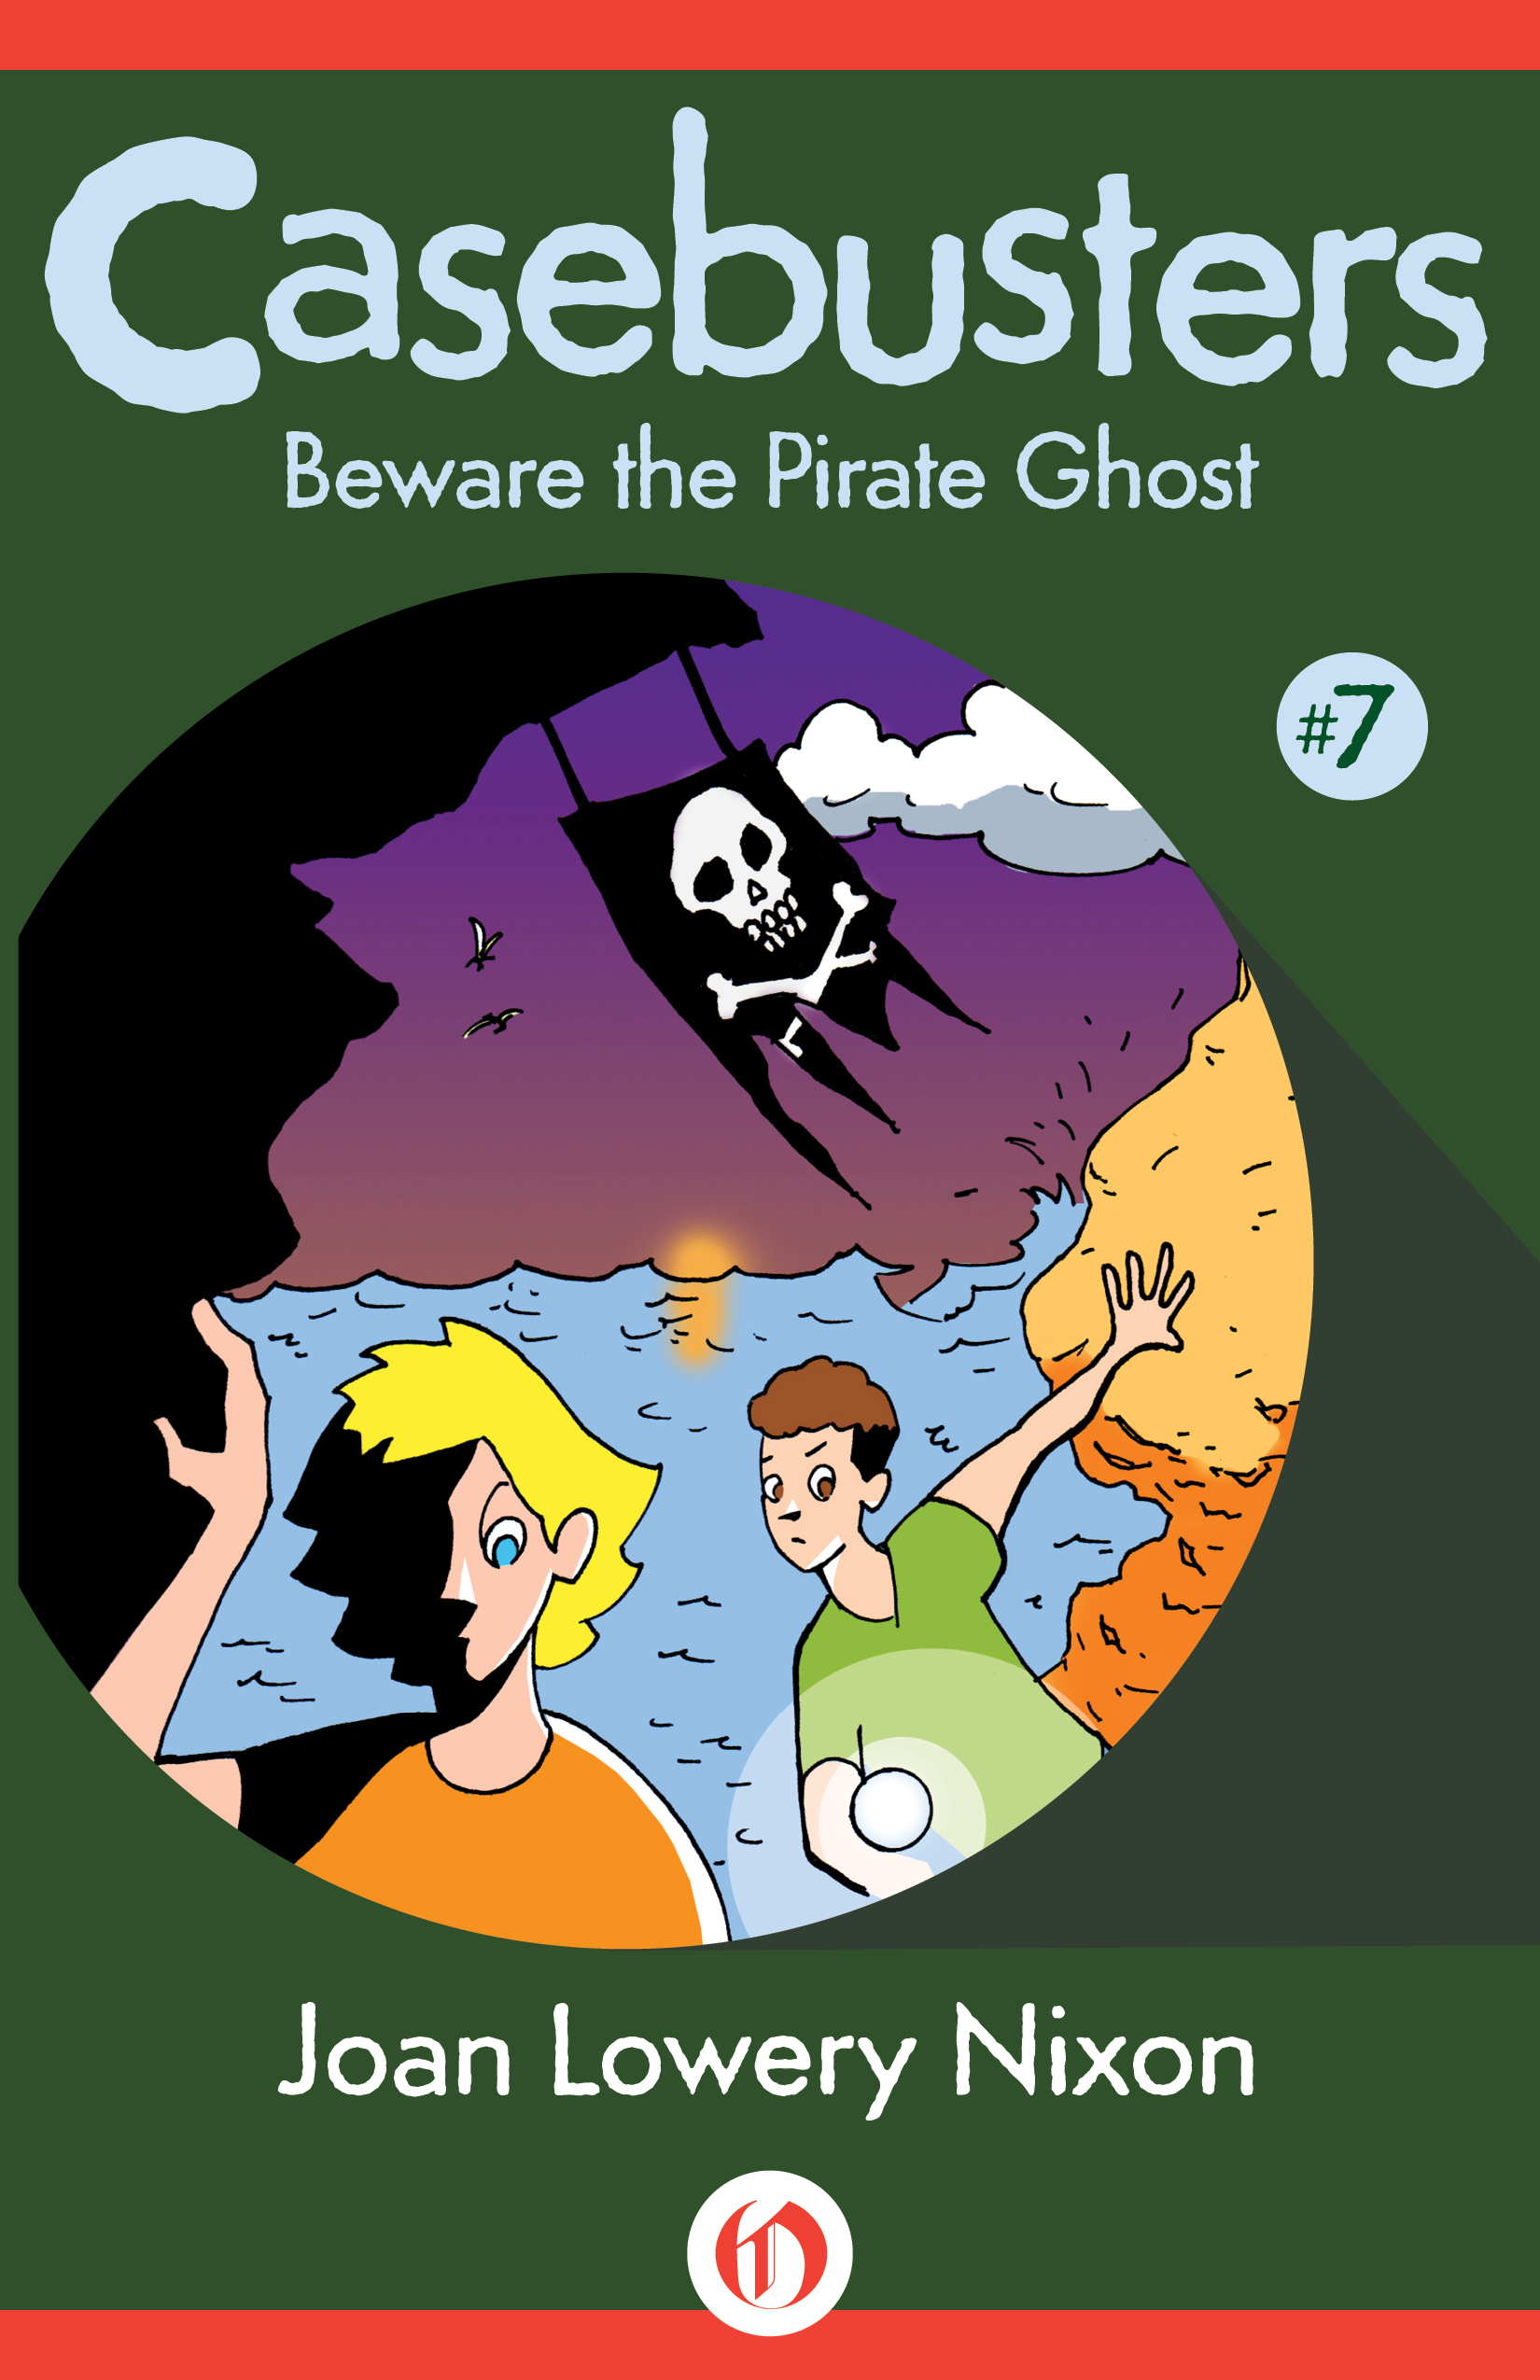 Beware the Pirate Ghost: Casebusters #7